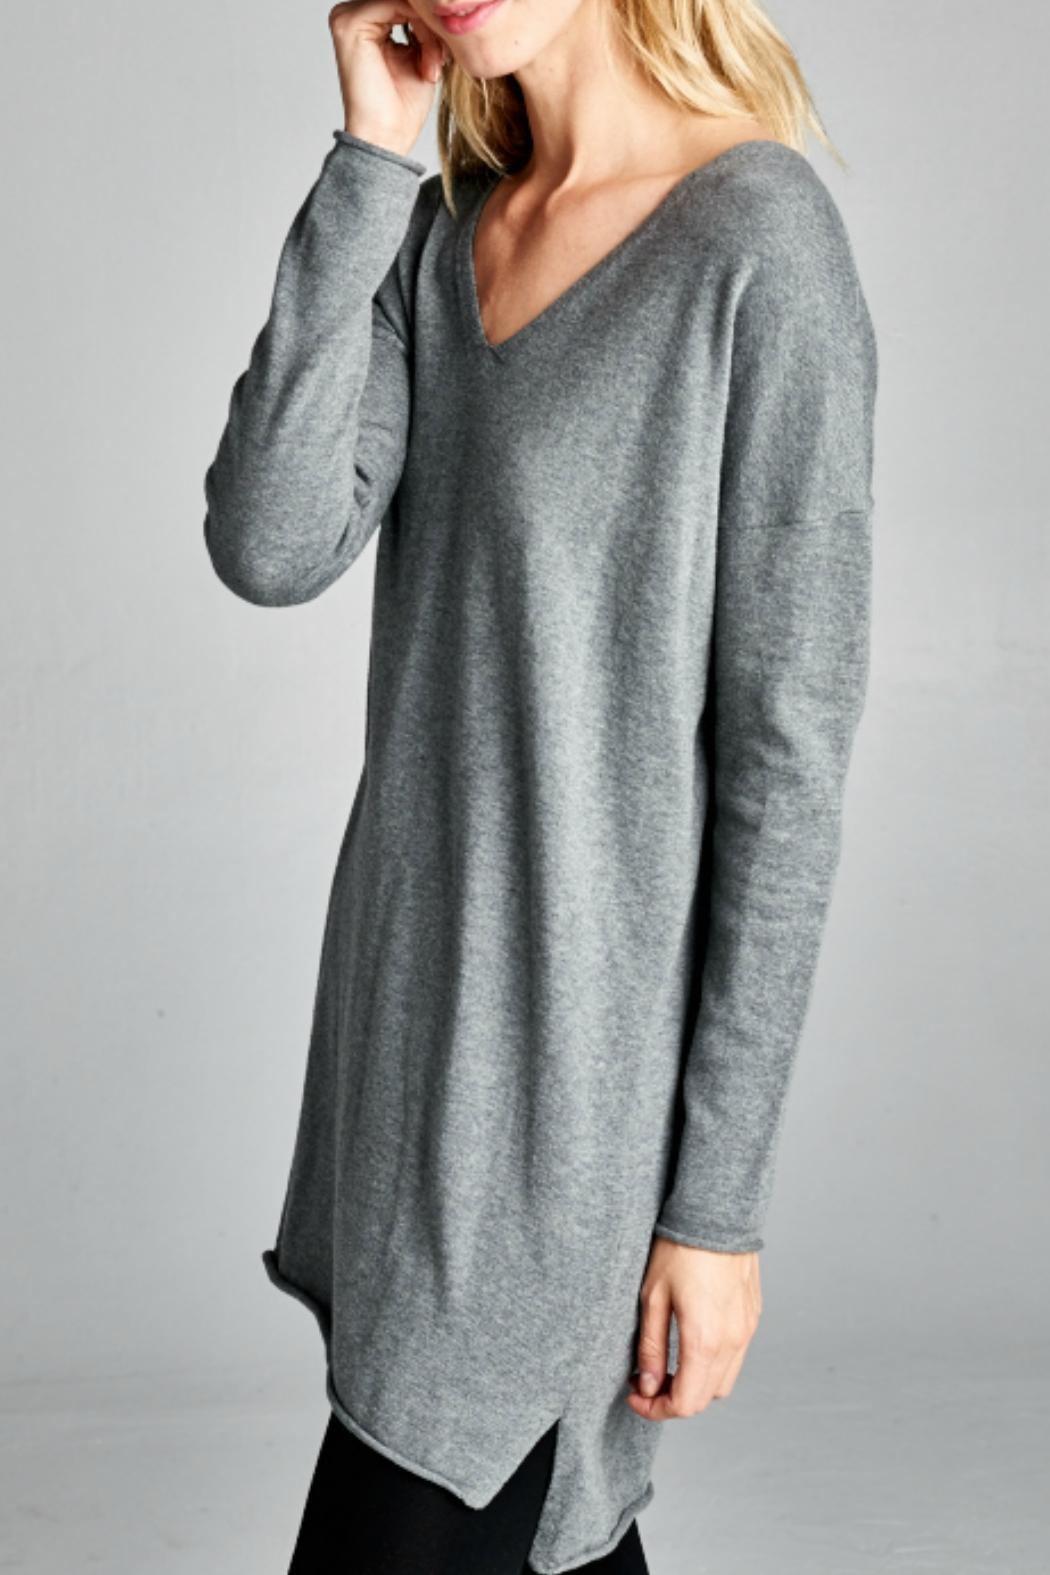 Grey Tunic Sweater Fashion Skirts